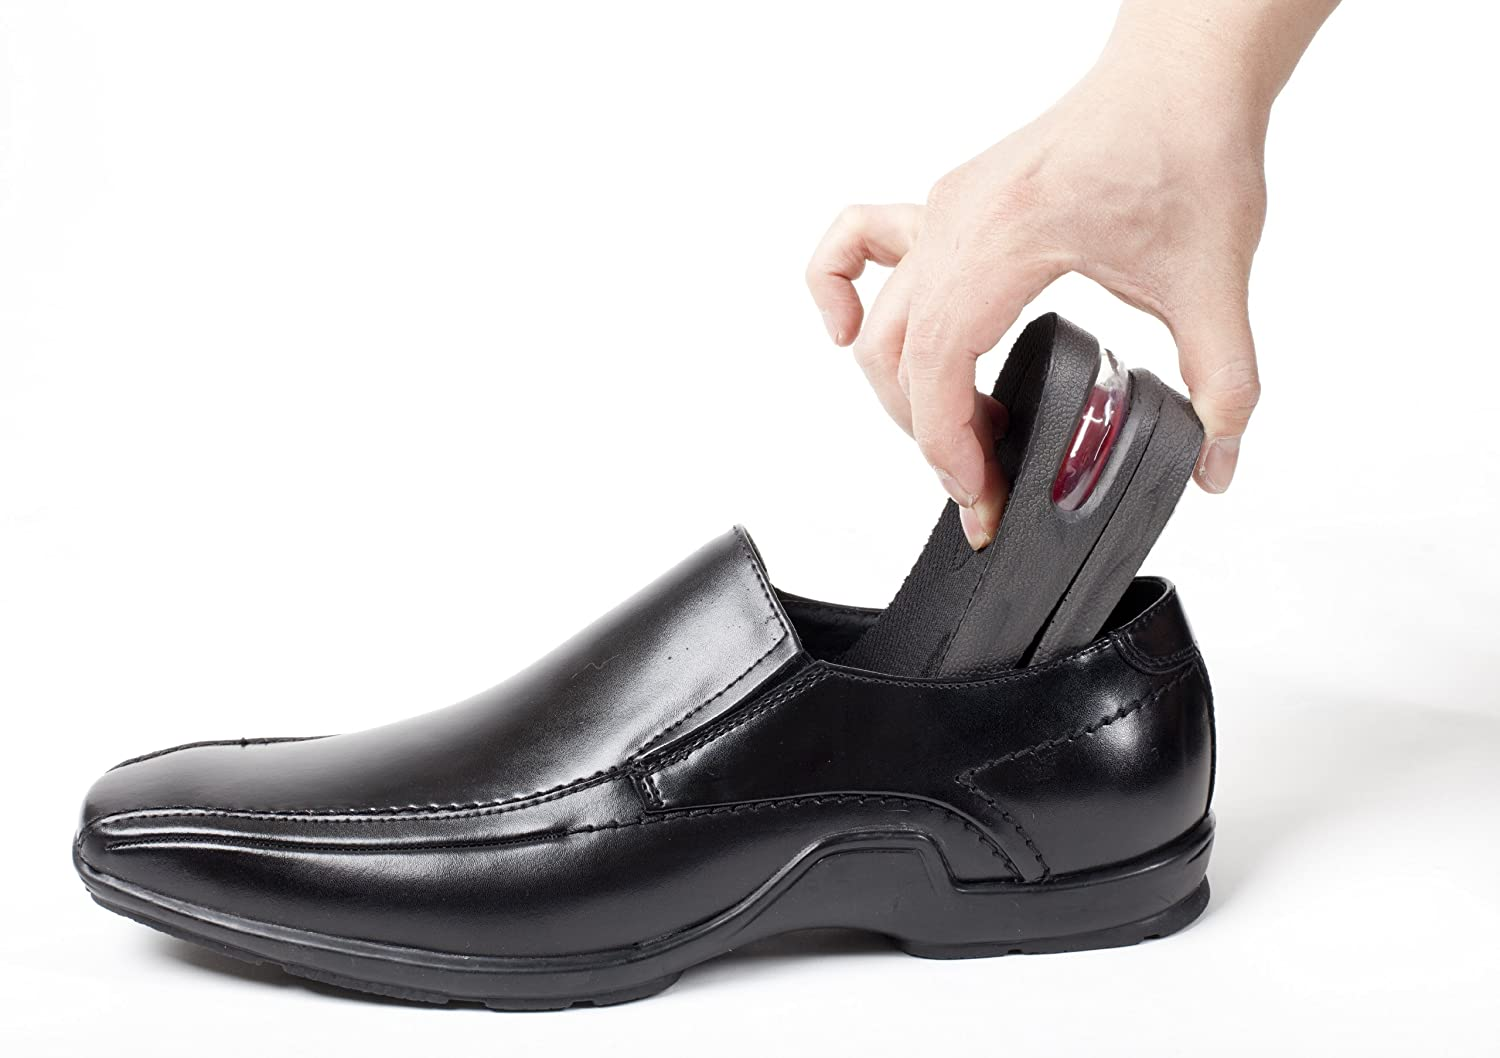 Buy Wsws 2-Layer 2 Inches Height Increase Elevator Shoes Insole For Men - 5  Cm Taller Online at Low Prices in India - Amazon.in